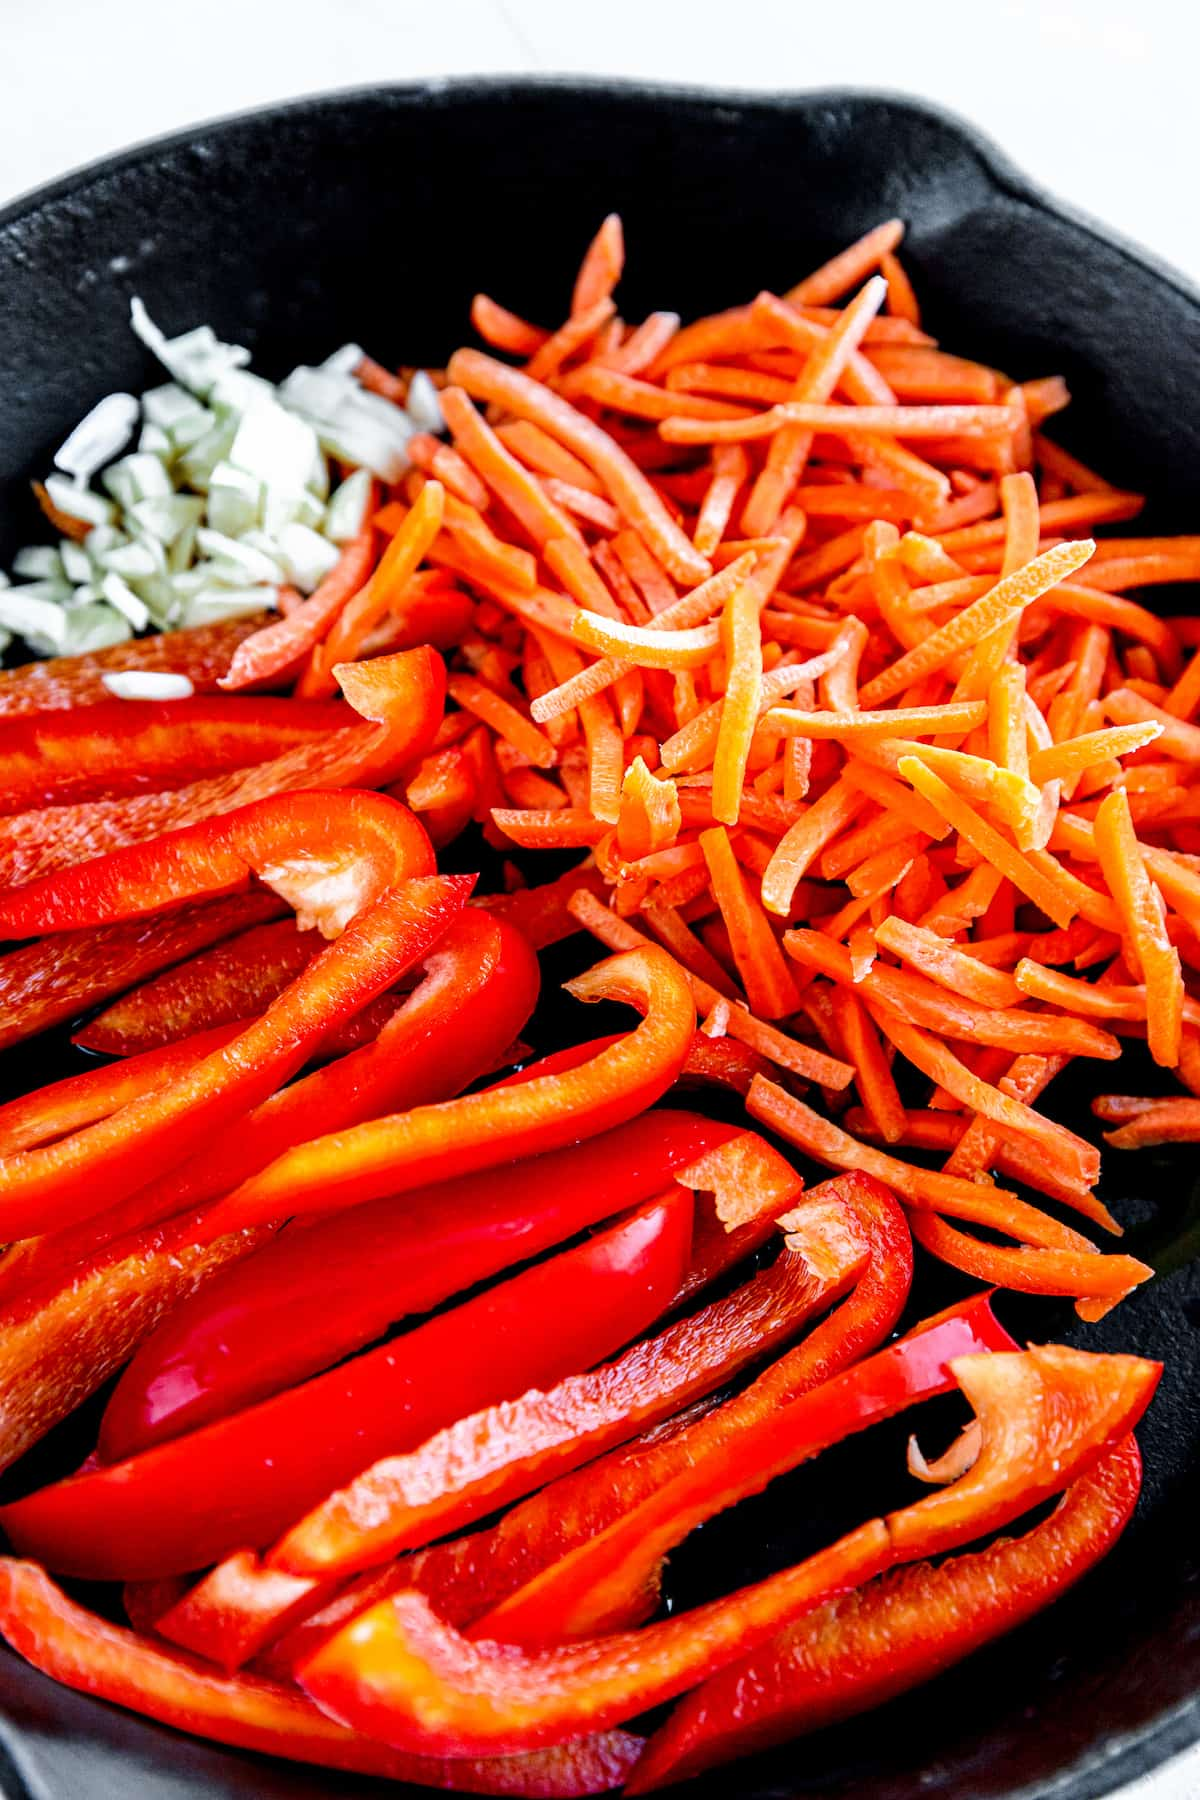 Raw Bell Peppers, Bean Sprouts and Shredded Carrots in a Skillet